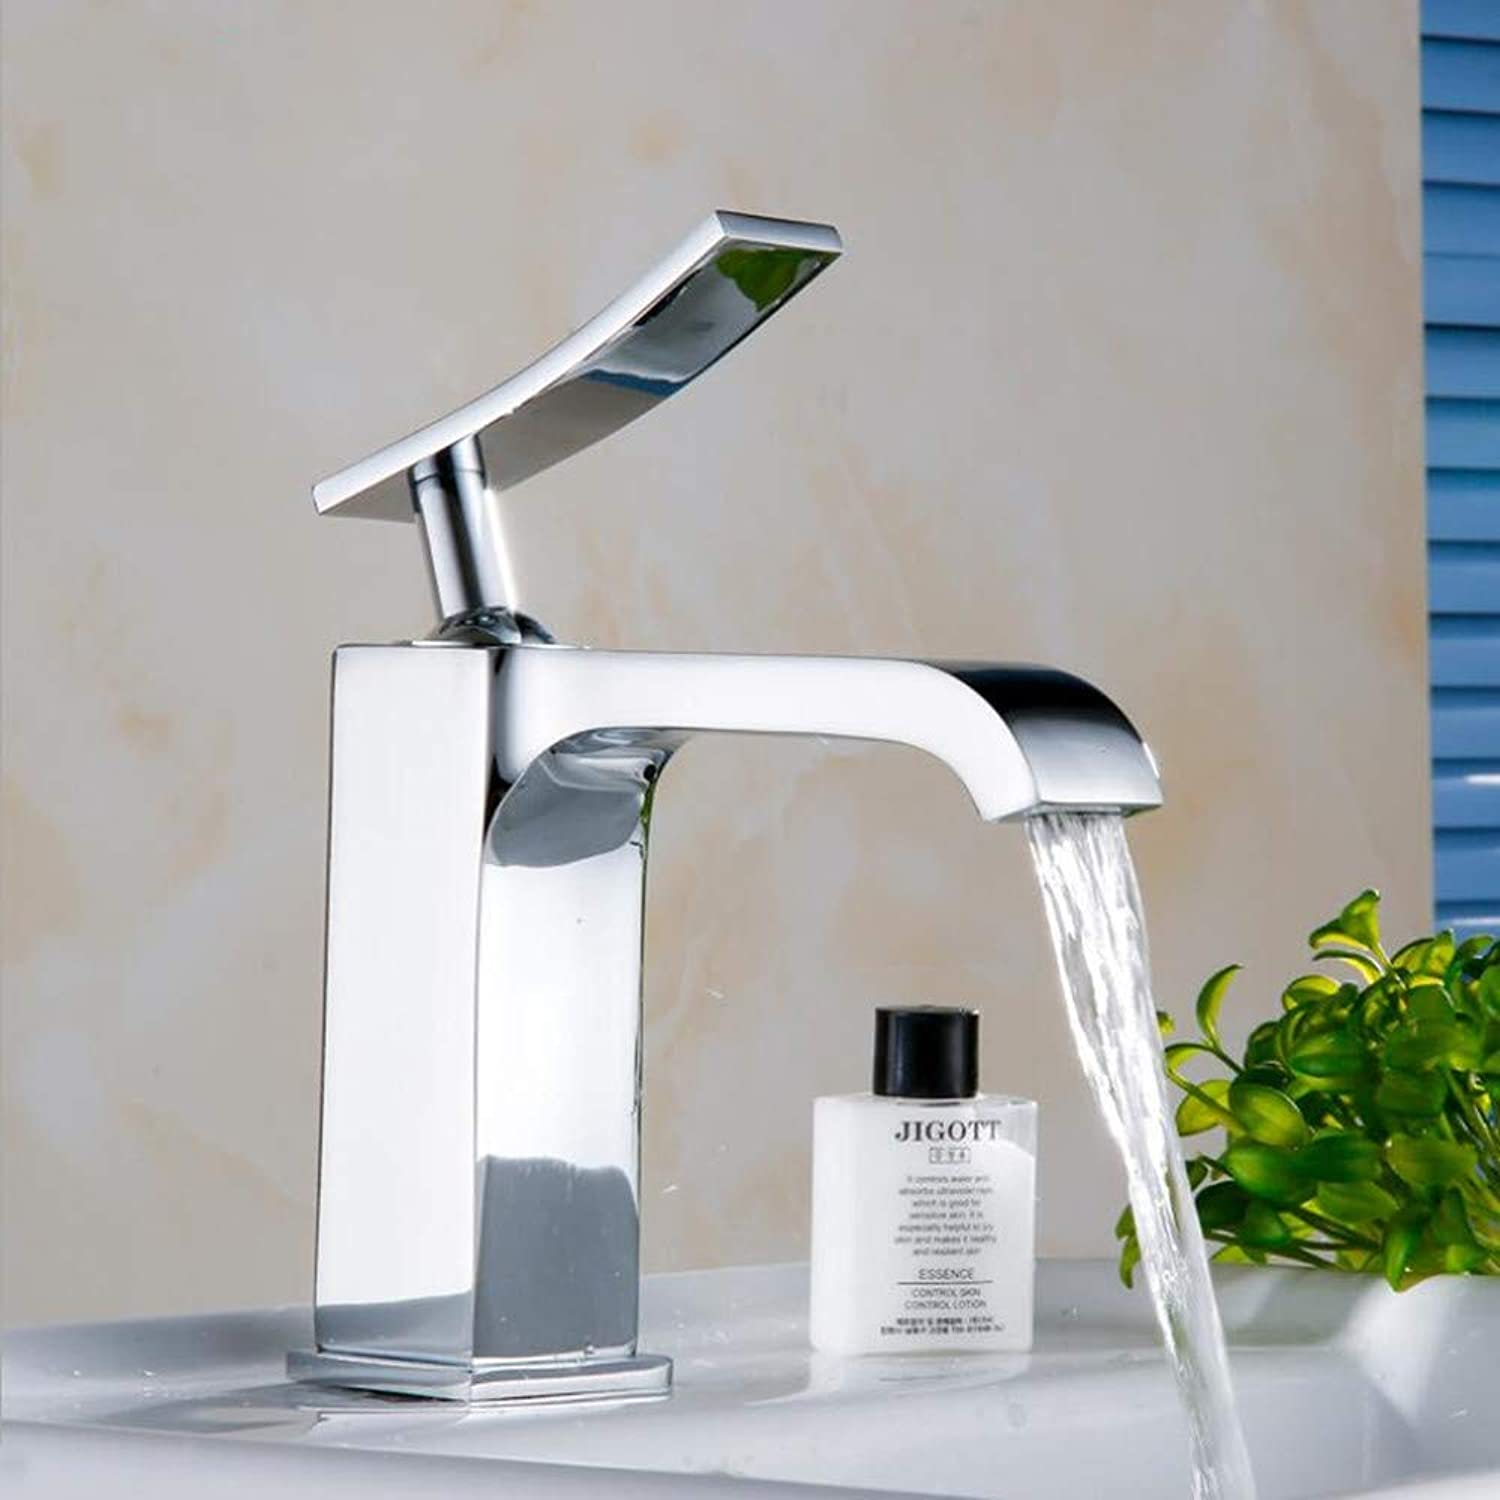 Ddl Kupfer Faucet Basin Single Square Faucet Basin Hot and Cold Faucet Single Handle Bathroom Sink Faucet, Waterfall Faucet, Chrome